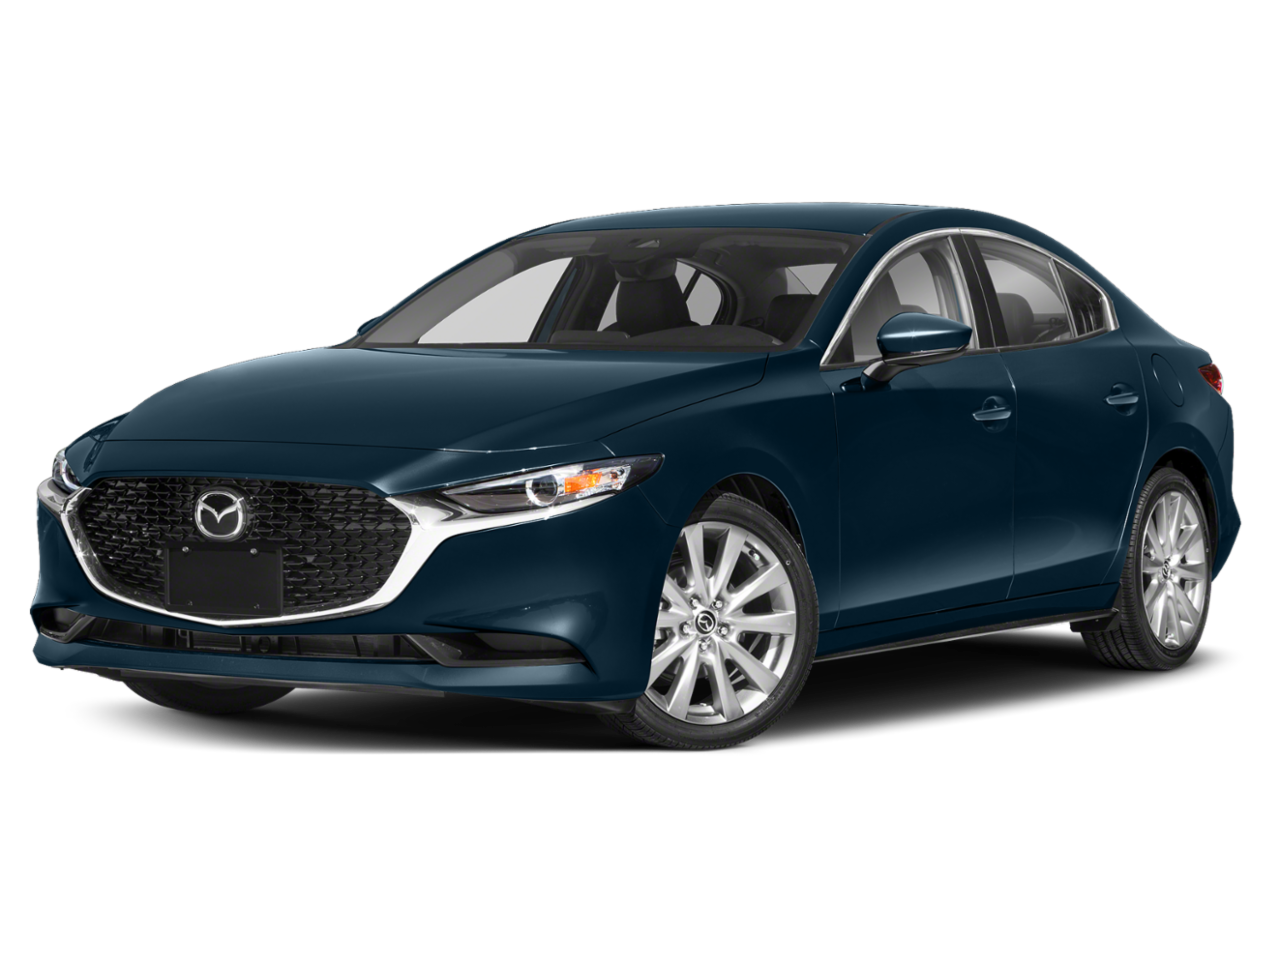 New 2021 Mazda3 Sedan 2.5 S w/Preferred Package